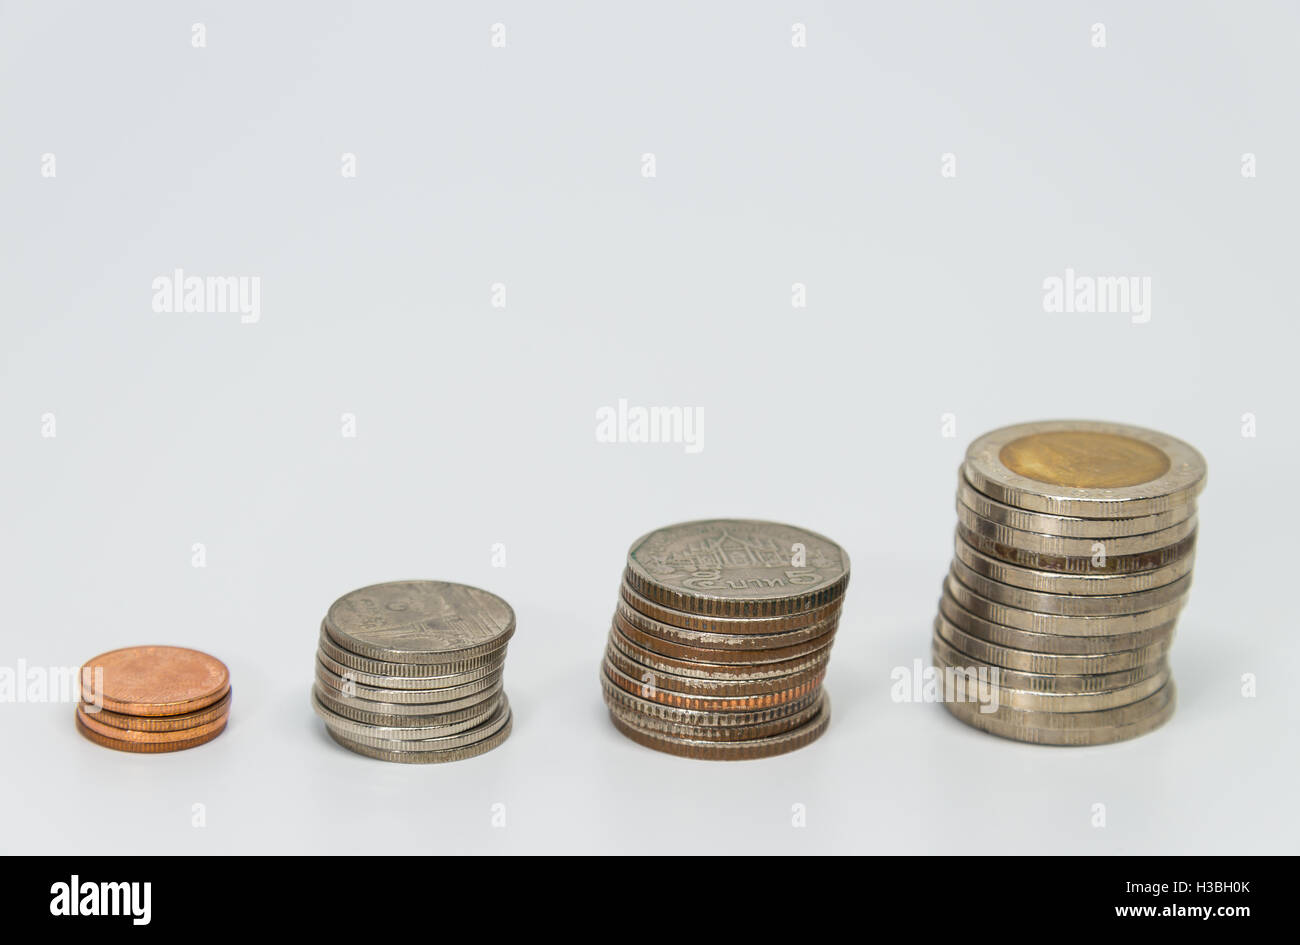 Rows of Thai baht coins for finance and banking concept with white background and selective focus - Stock Image